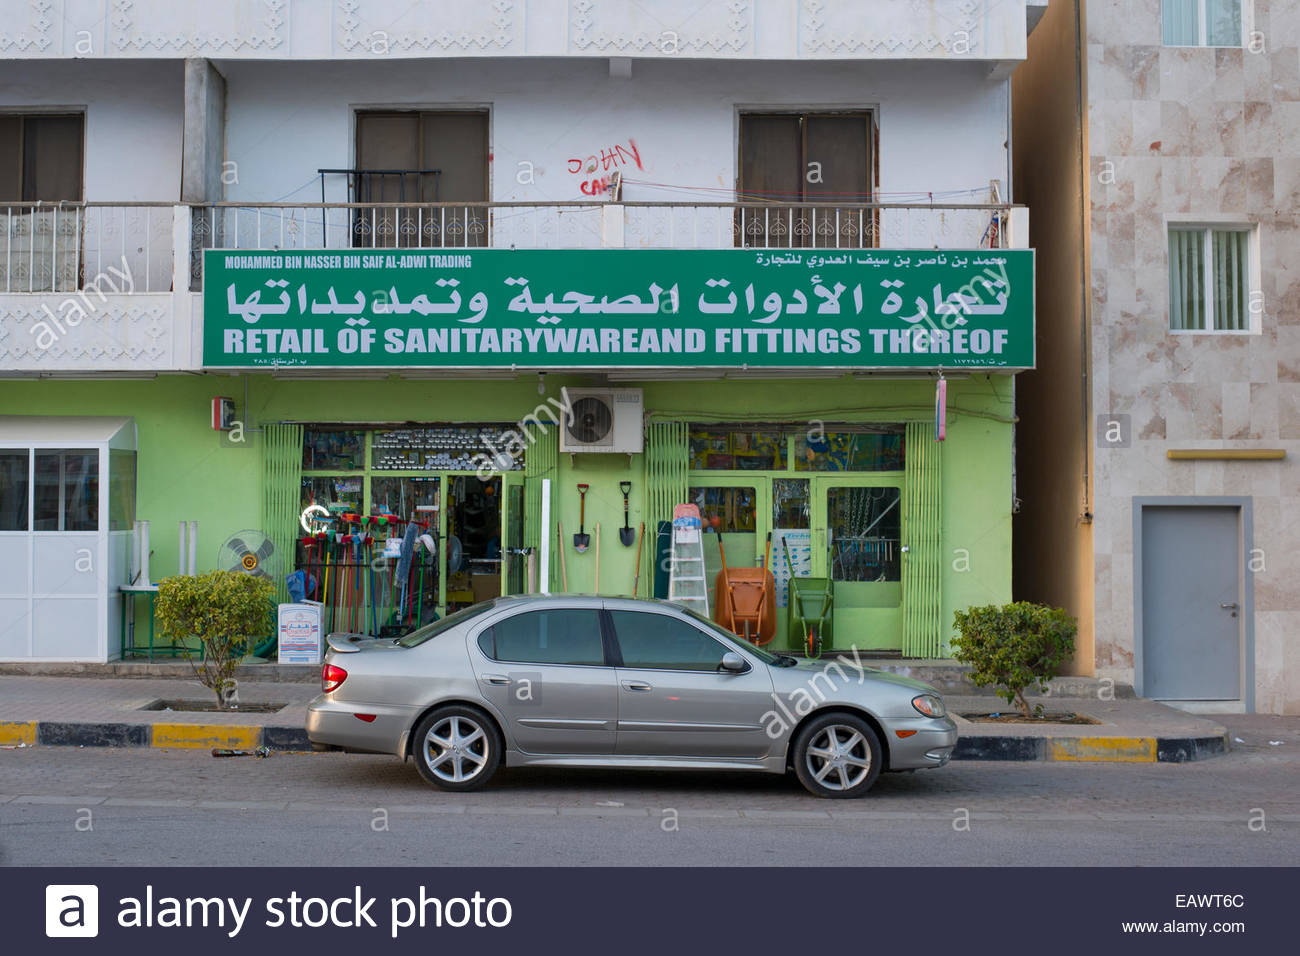 A car is parked outside a store with a poorly translated English sign in Rustaq, Oman. - Stock Image